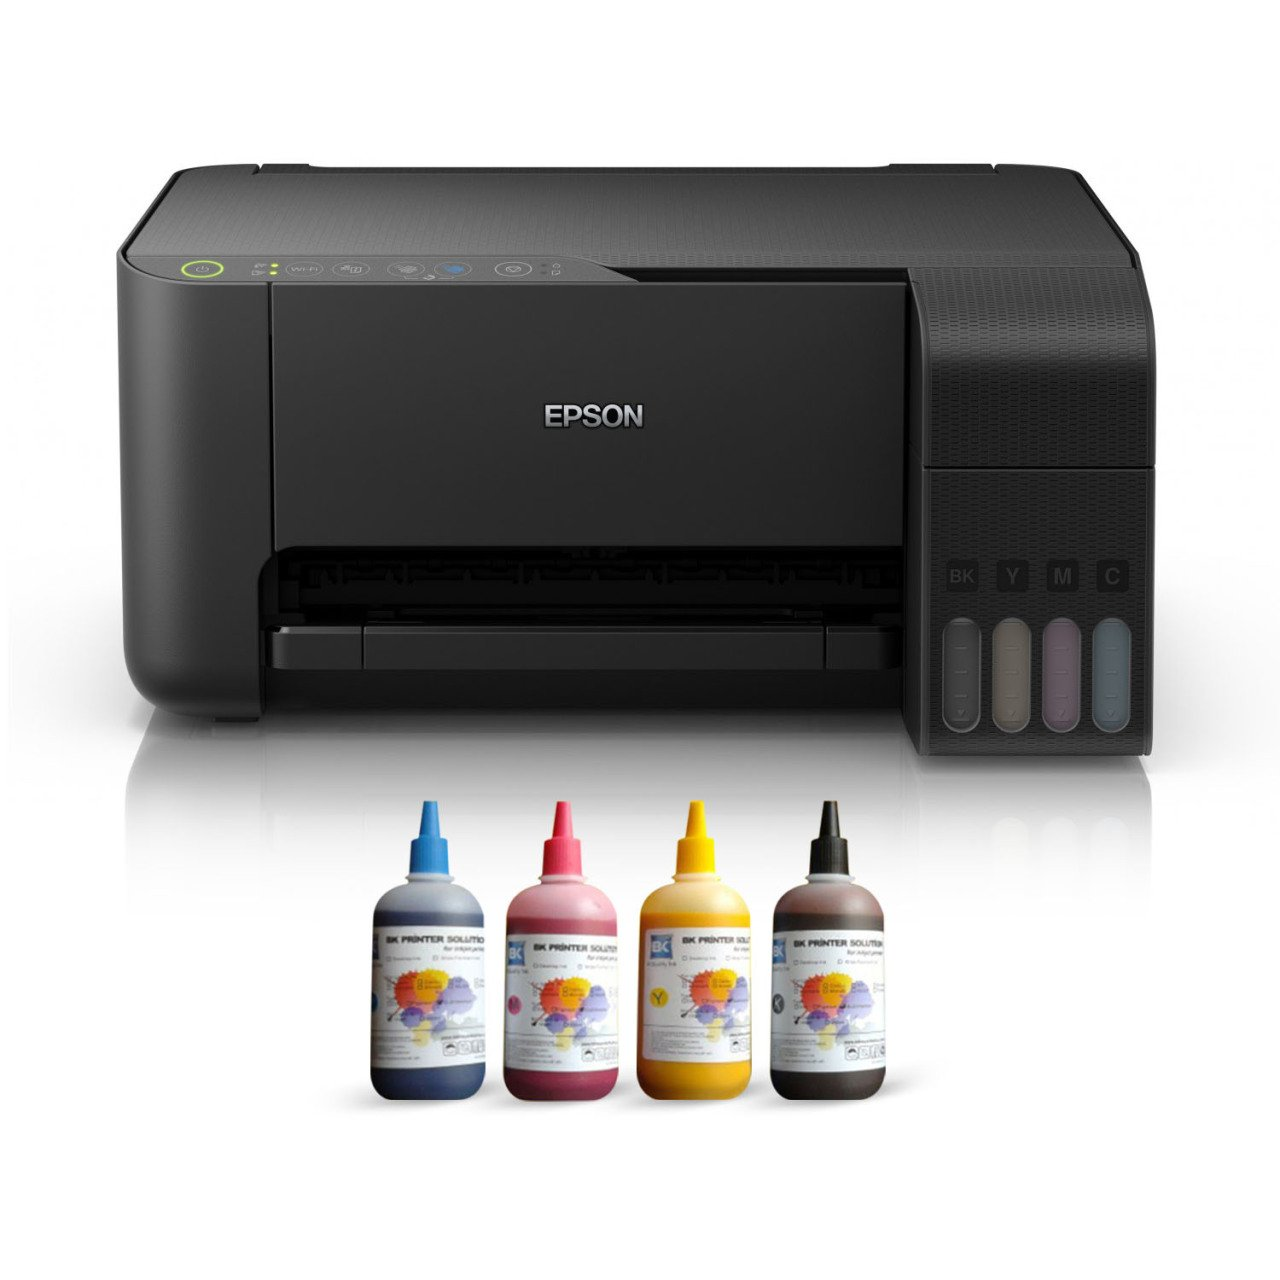 Epson TANK ITS L3150 Sublimation Ink Printer 4 Color Ending Catridges